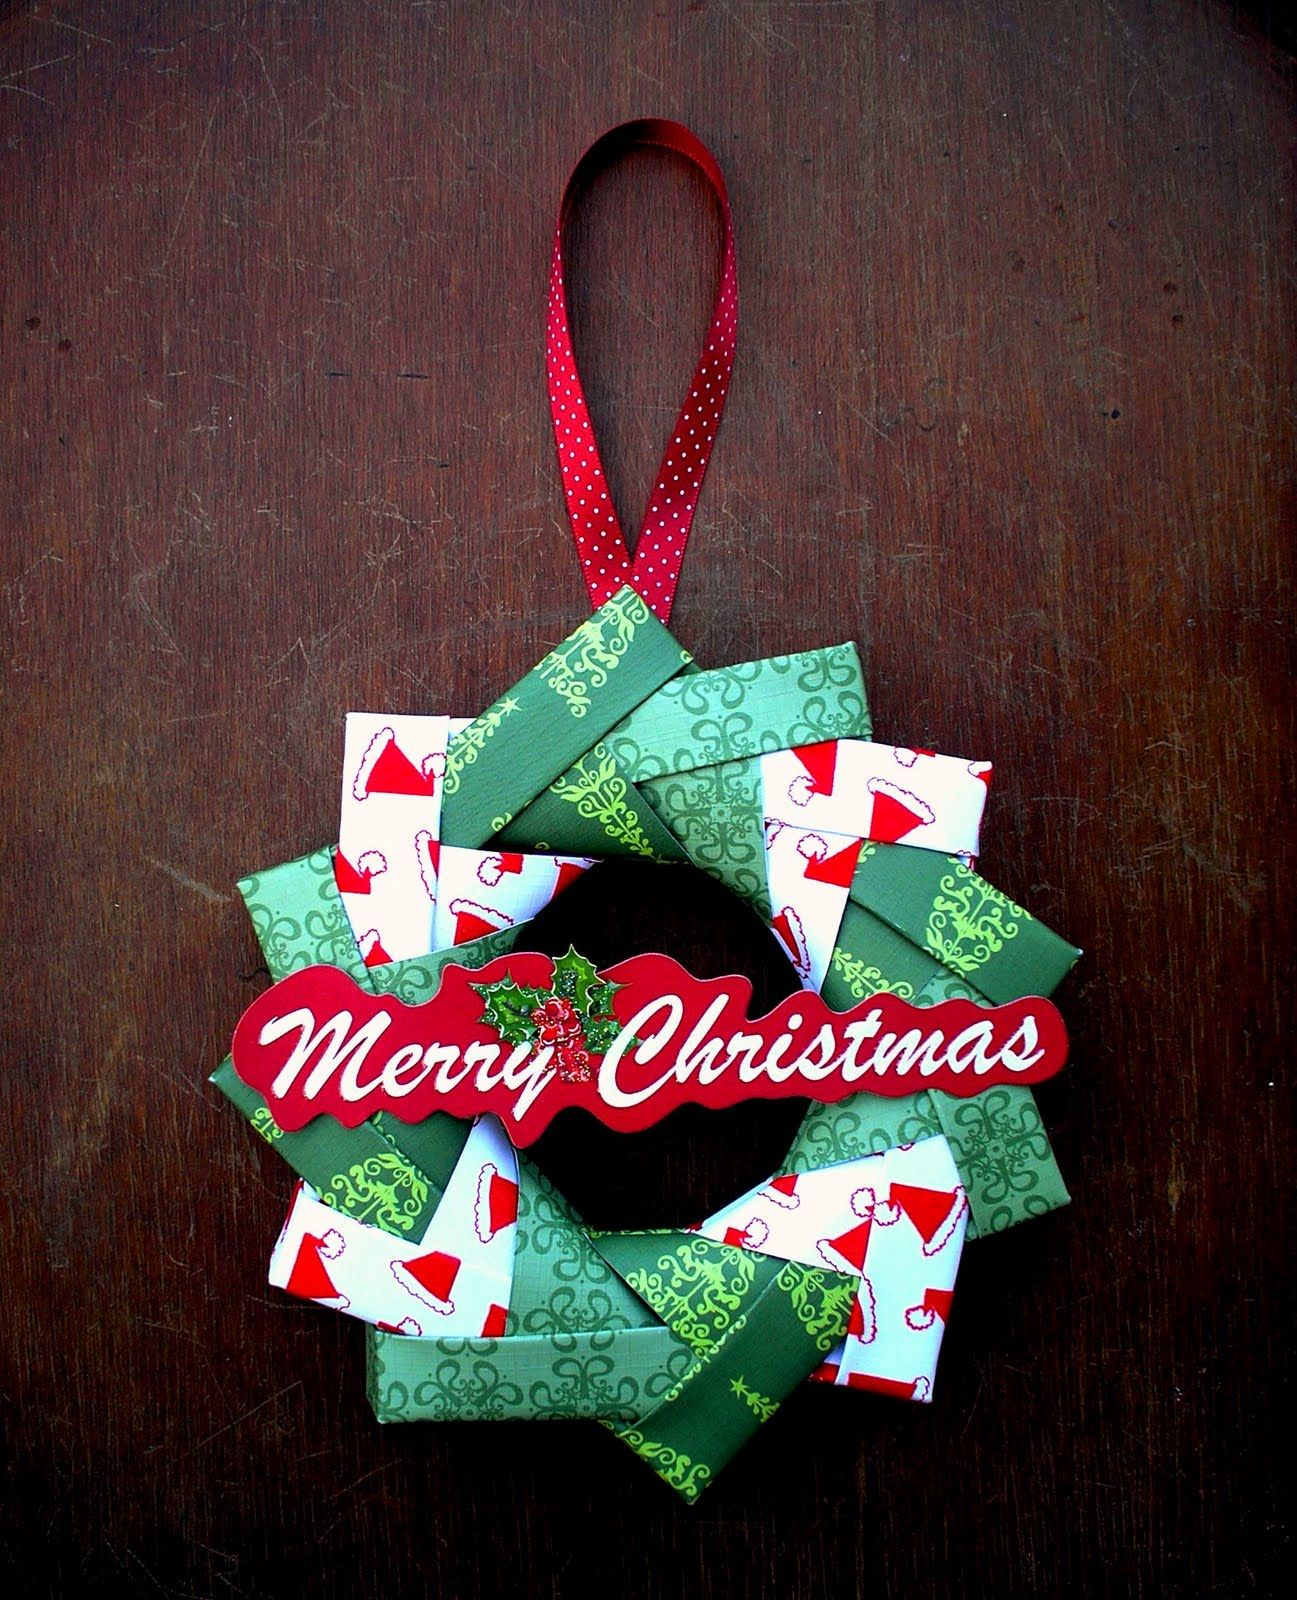 Christmas origami wreath - My Origami Wreath Is Made Up Of 12 Interlocking Units